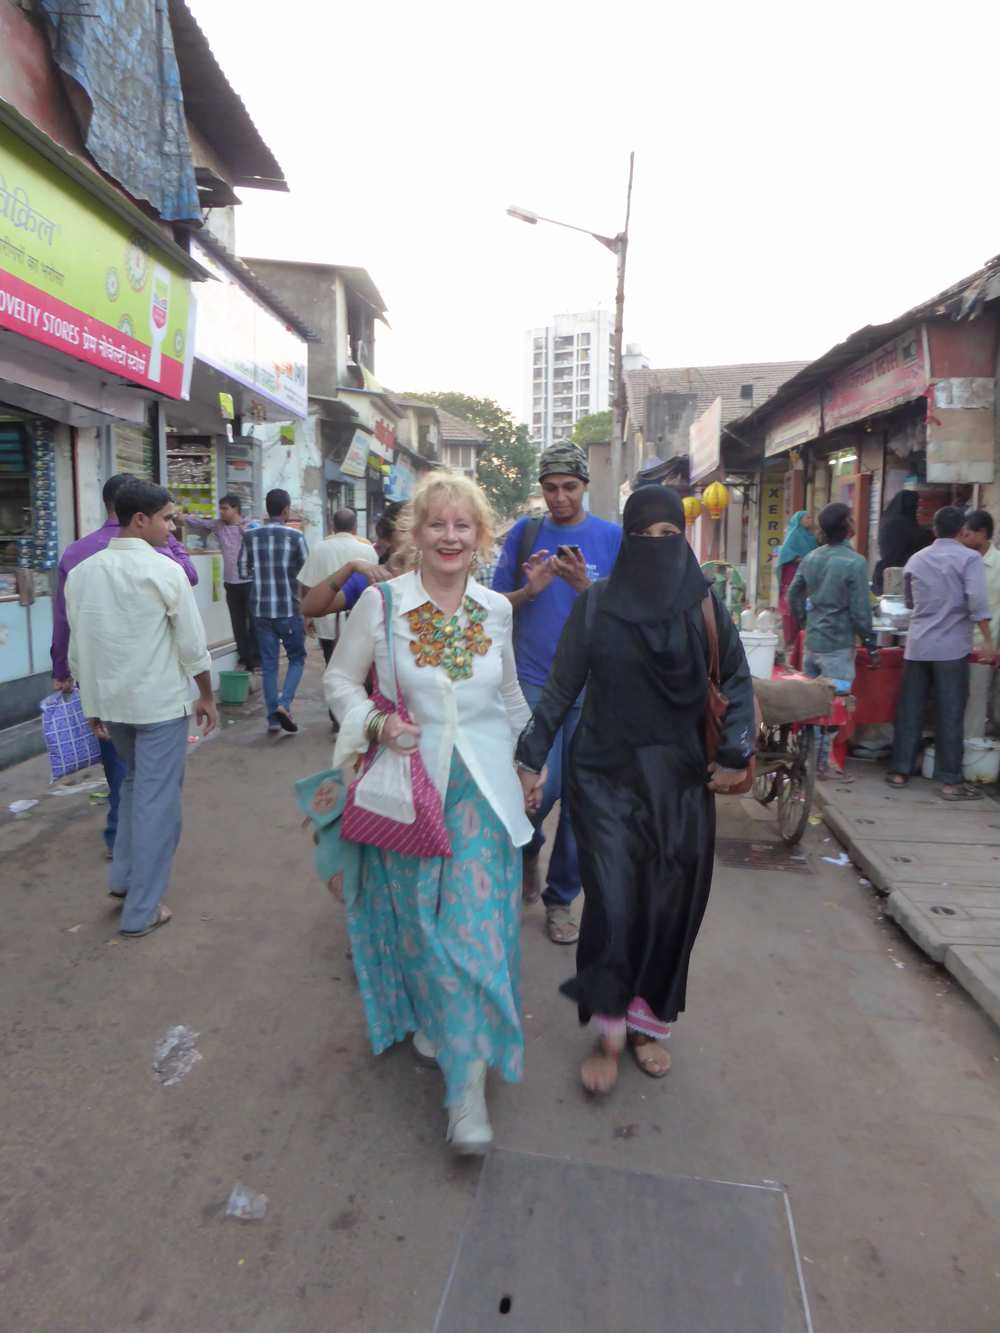 Walking to the opening with Bano, the transgender and Tehseen